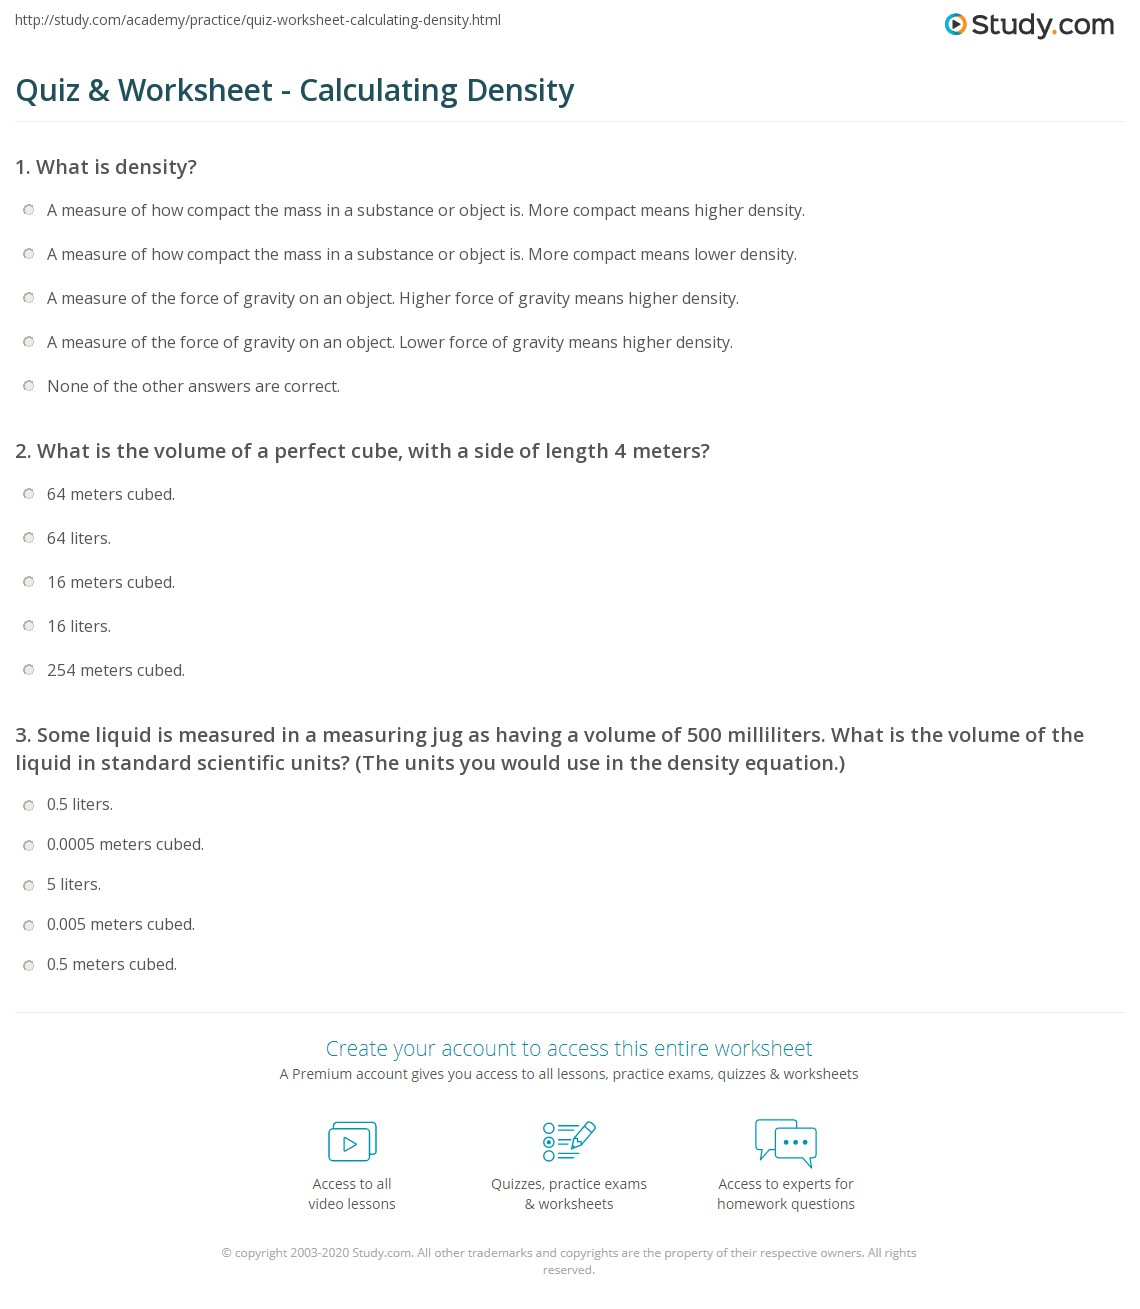 Density Calculations Worksheet Answers Sharebrowse – Density Worksheet Answers